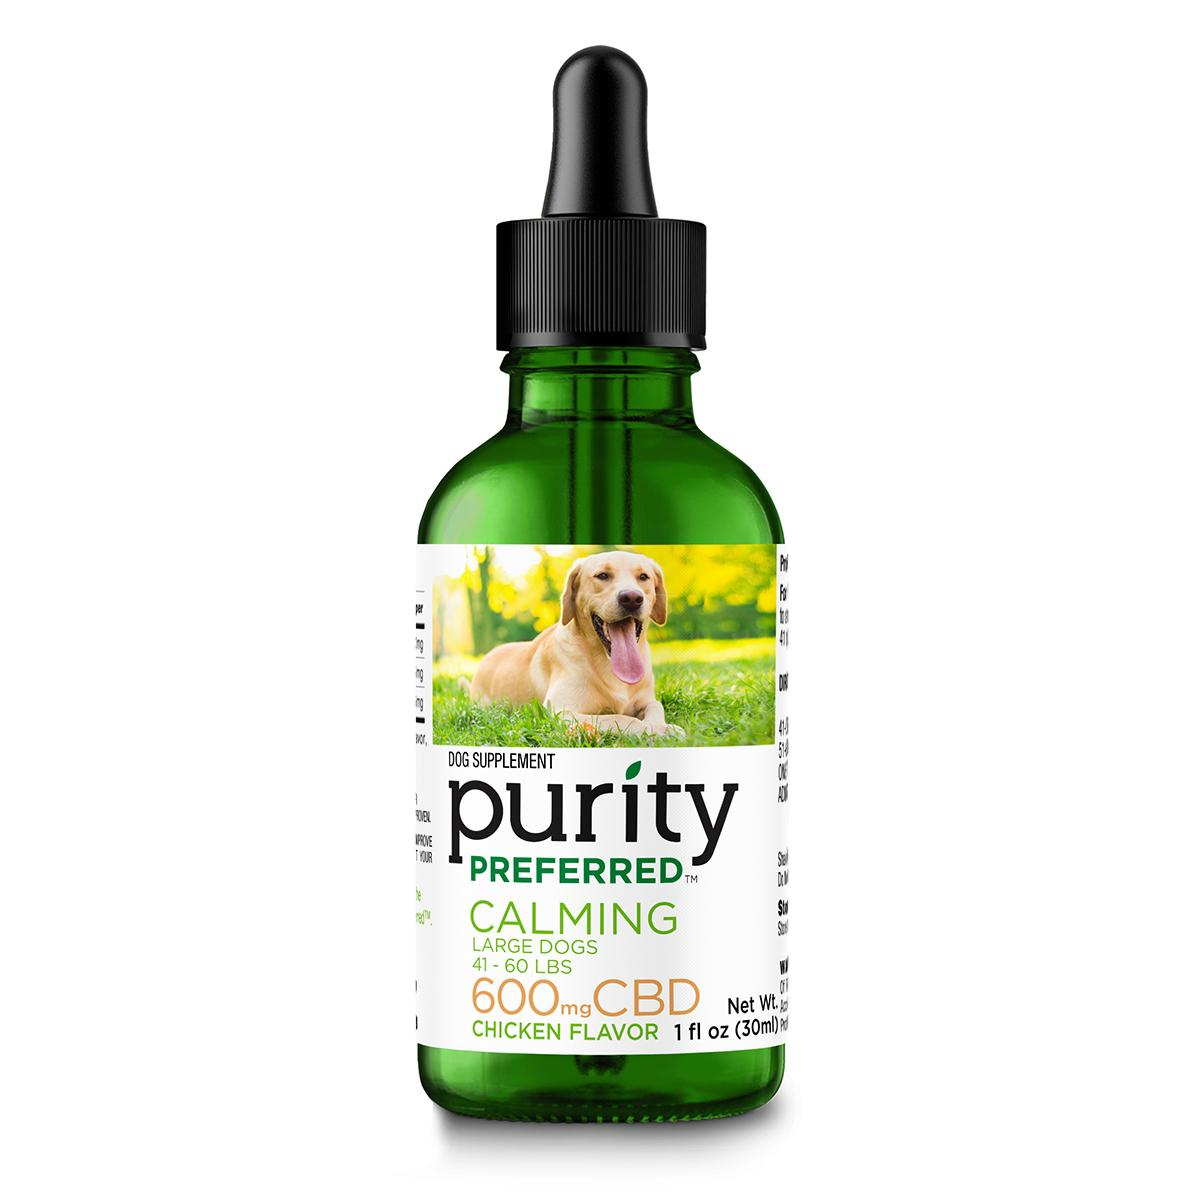 Purity Preferred CBD Calming Drops for Large Dogs - 600 mg_main